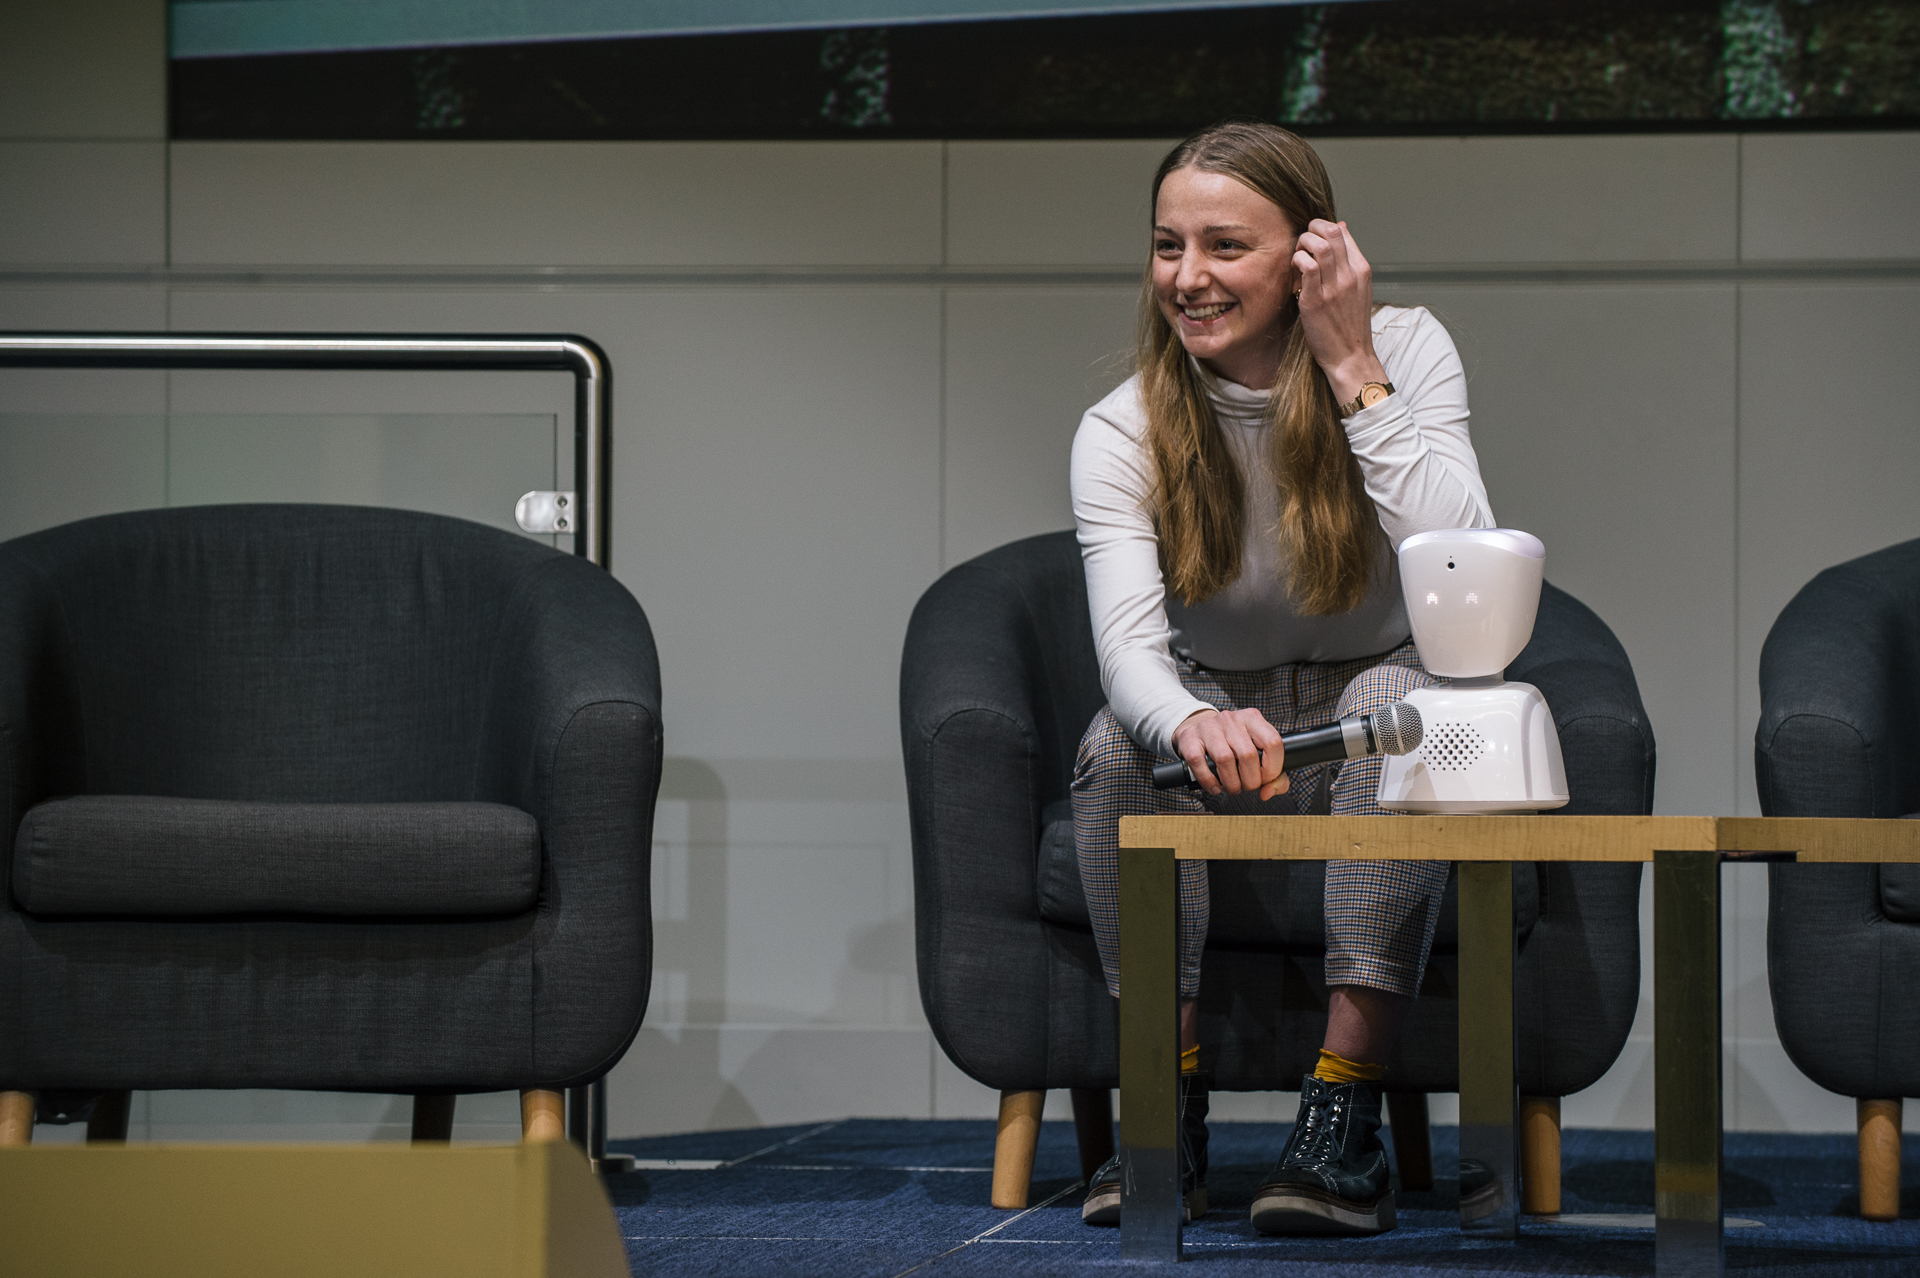 No isolation robot on stage at TechShare Pro